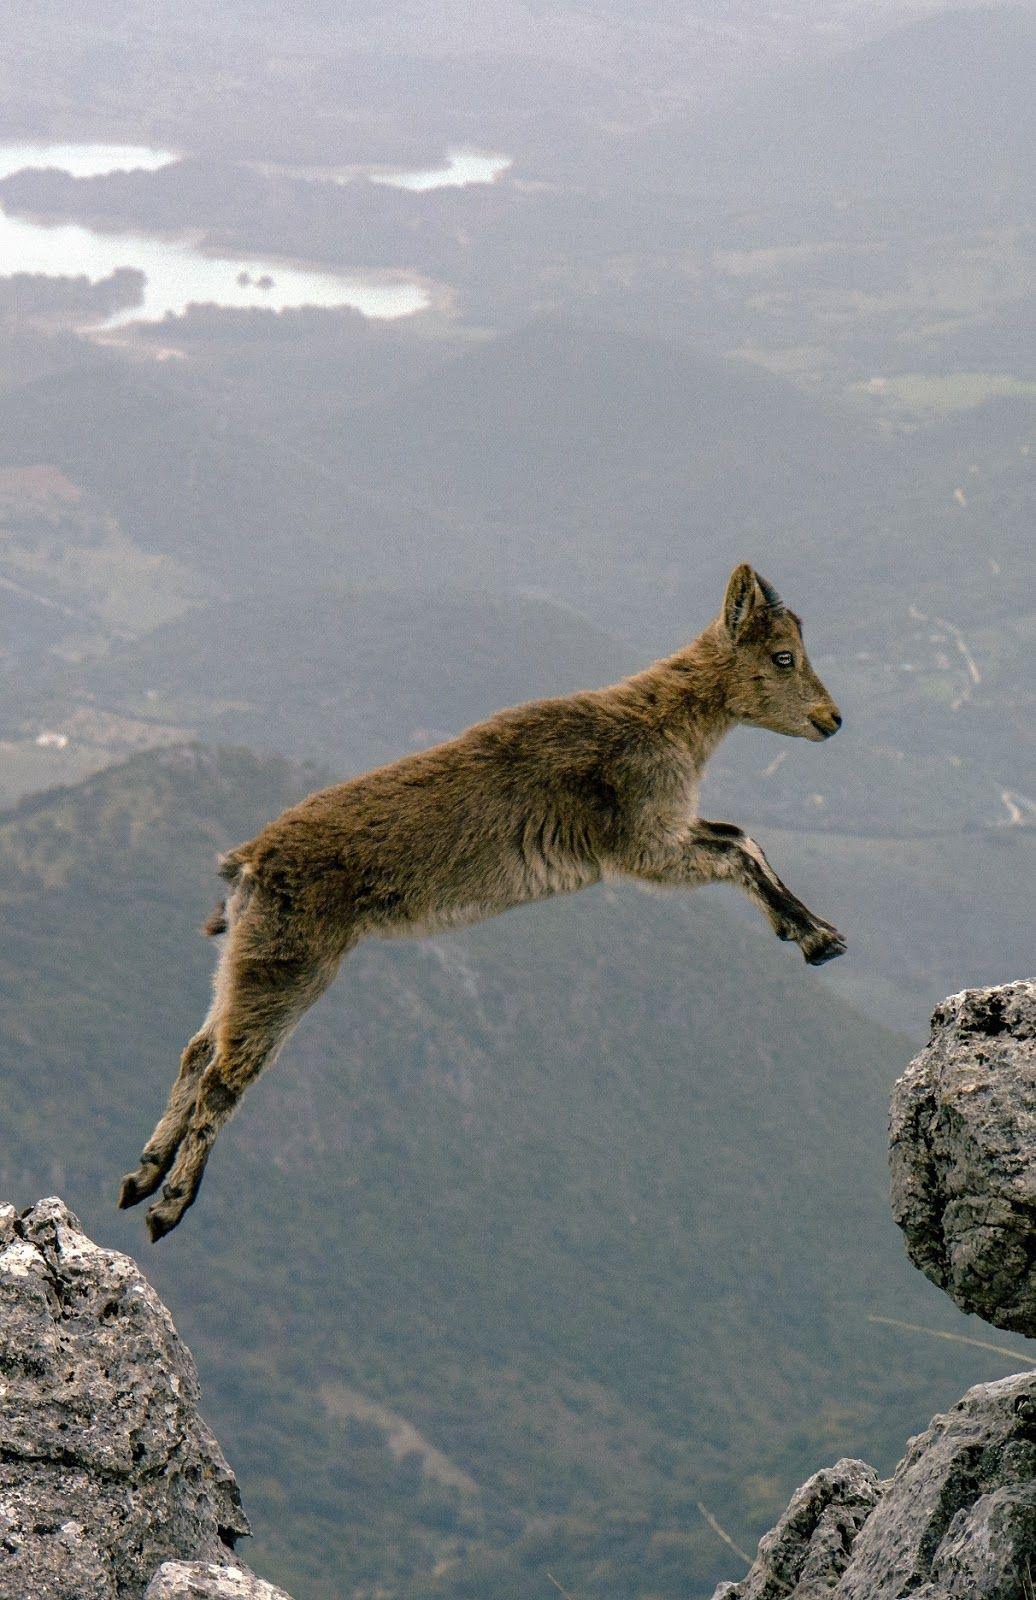 A picture of a mountain goat jumping | Animals, Animals beautiful ...